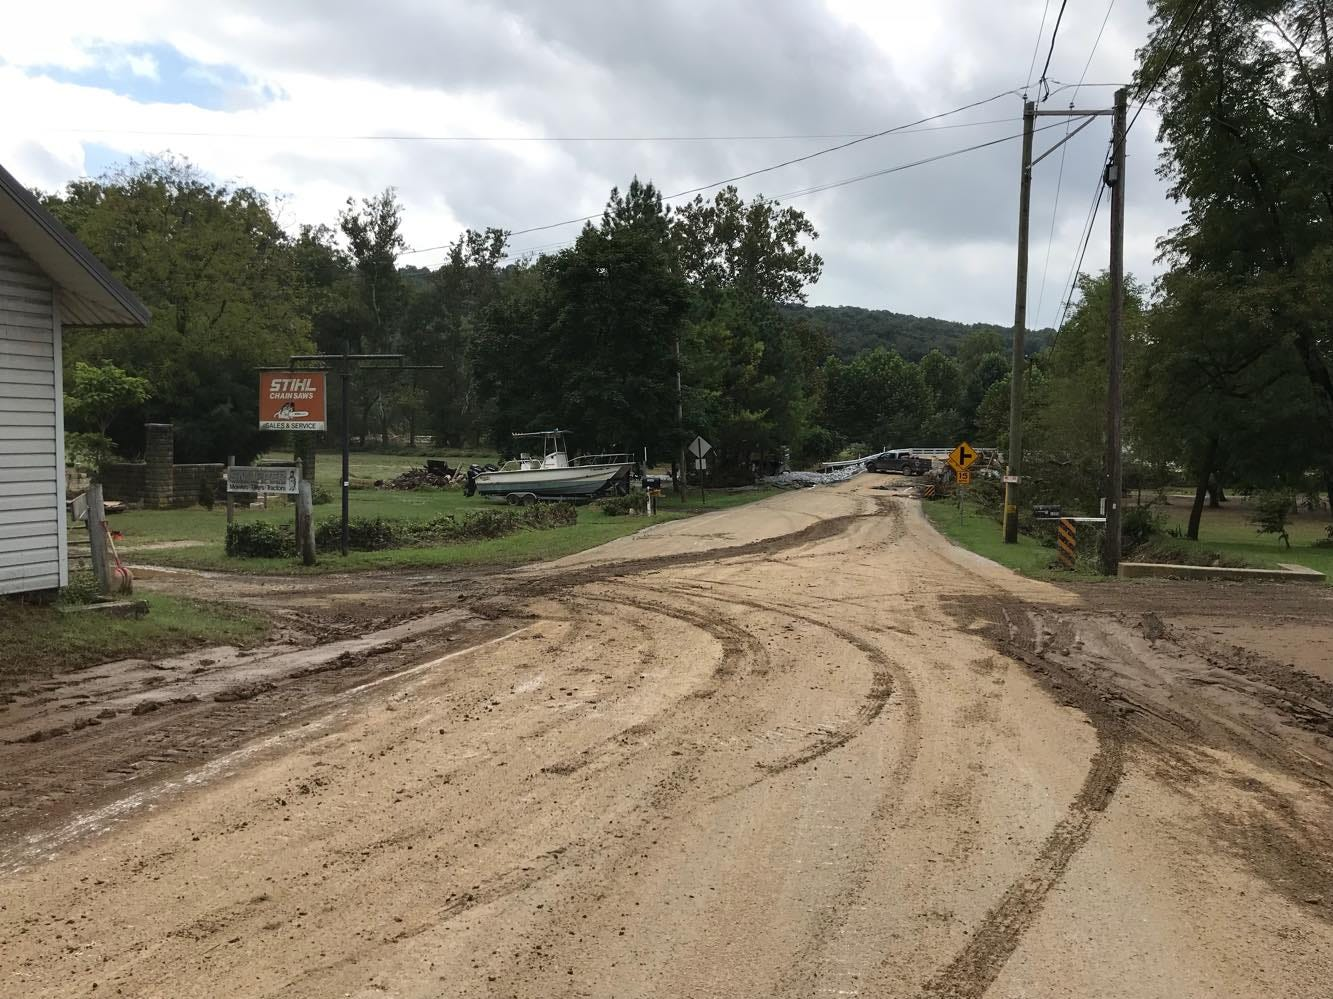 Woodbine Saw Company and the surrounding area along Muddy Creek was hit by flooding from the storm Aug. 31. Photos by Briar Horton.